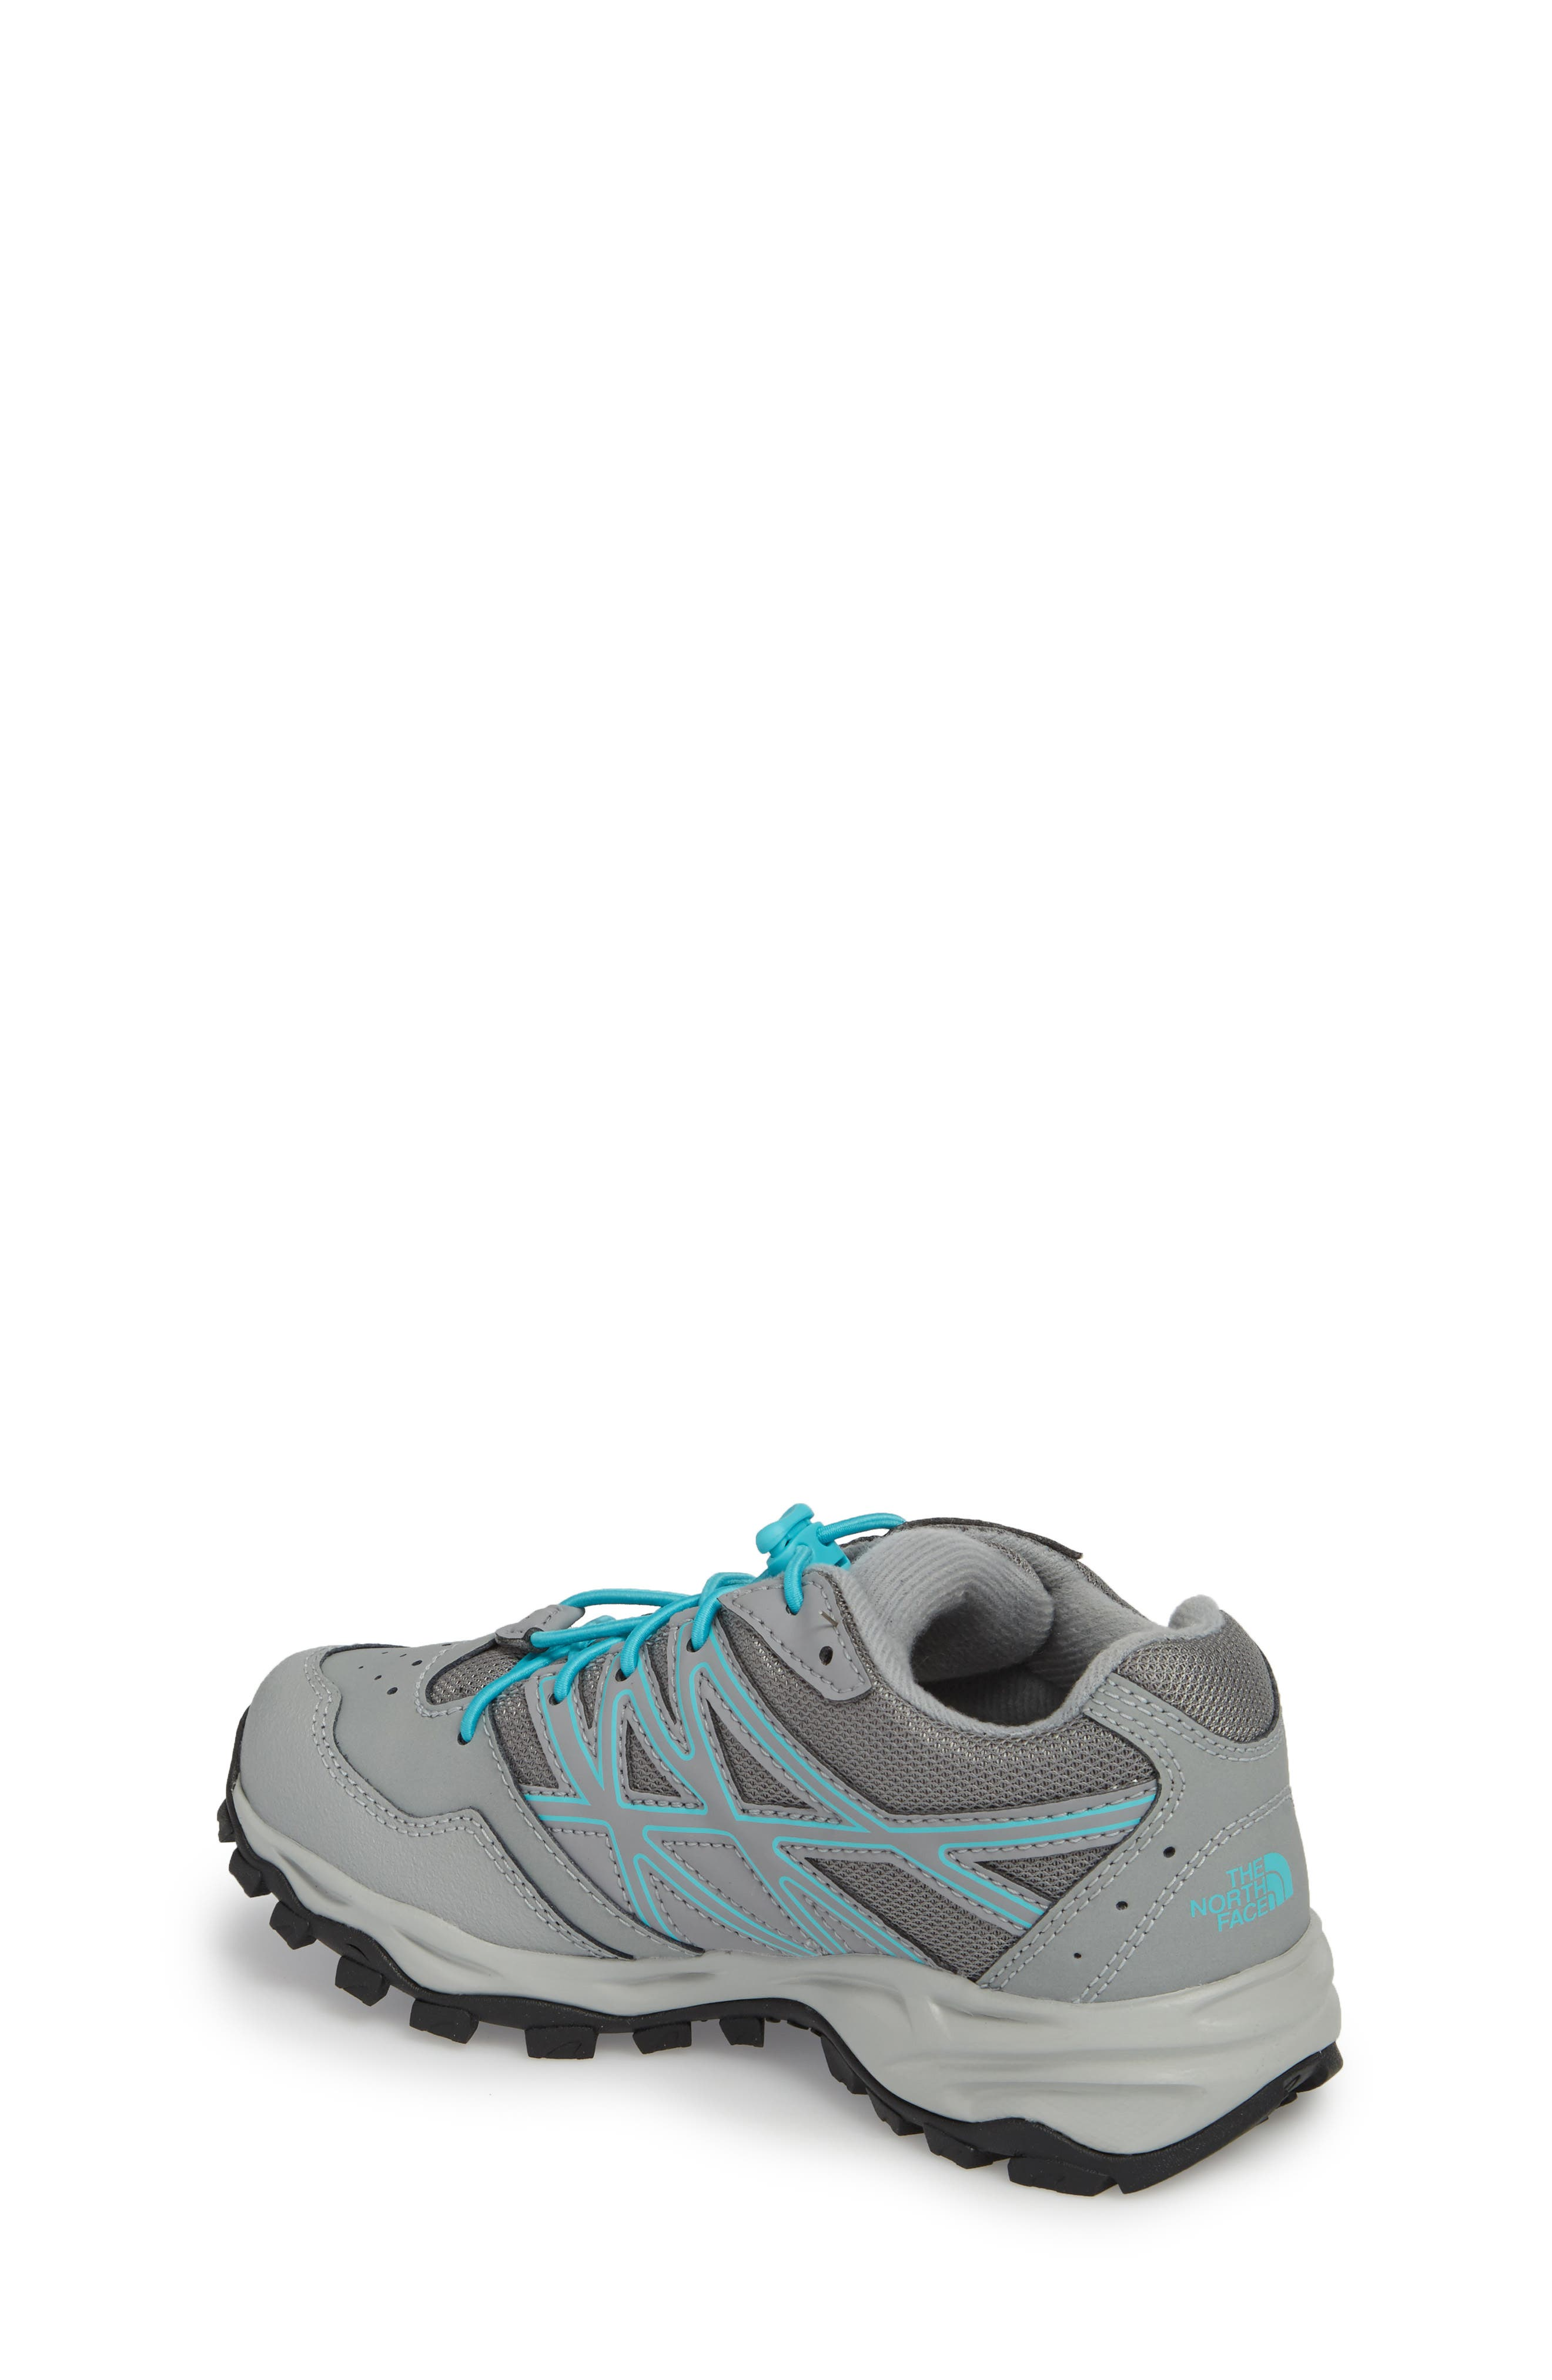 Hedgehog Hiker Boot,                             Alternate thumbnail 2, color,                             Griffin Grey/ Blue Curacao